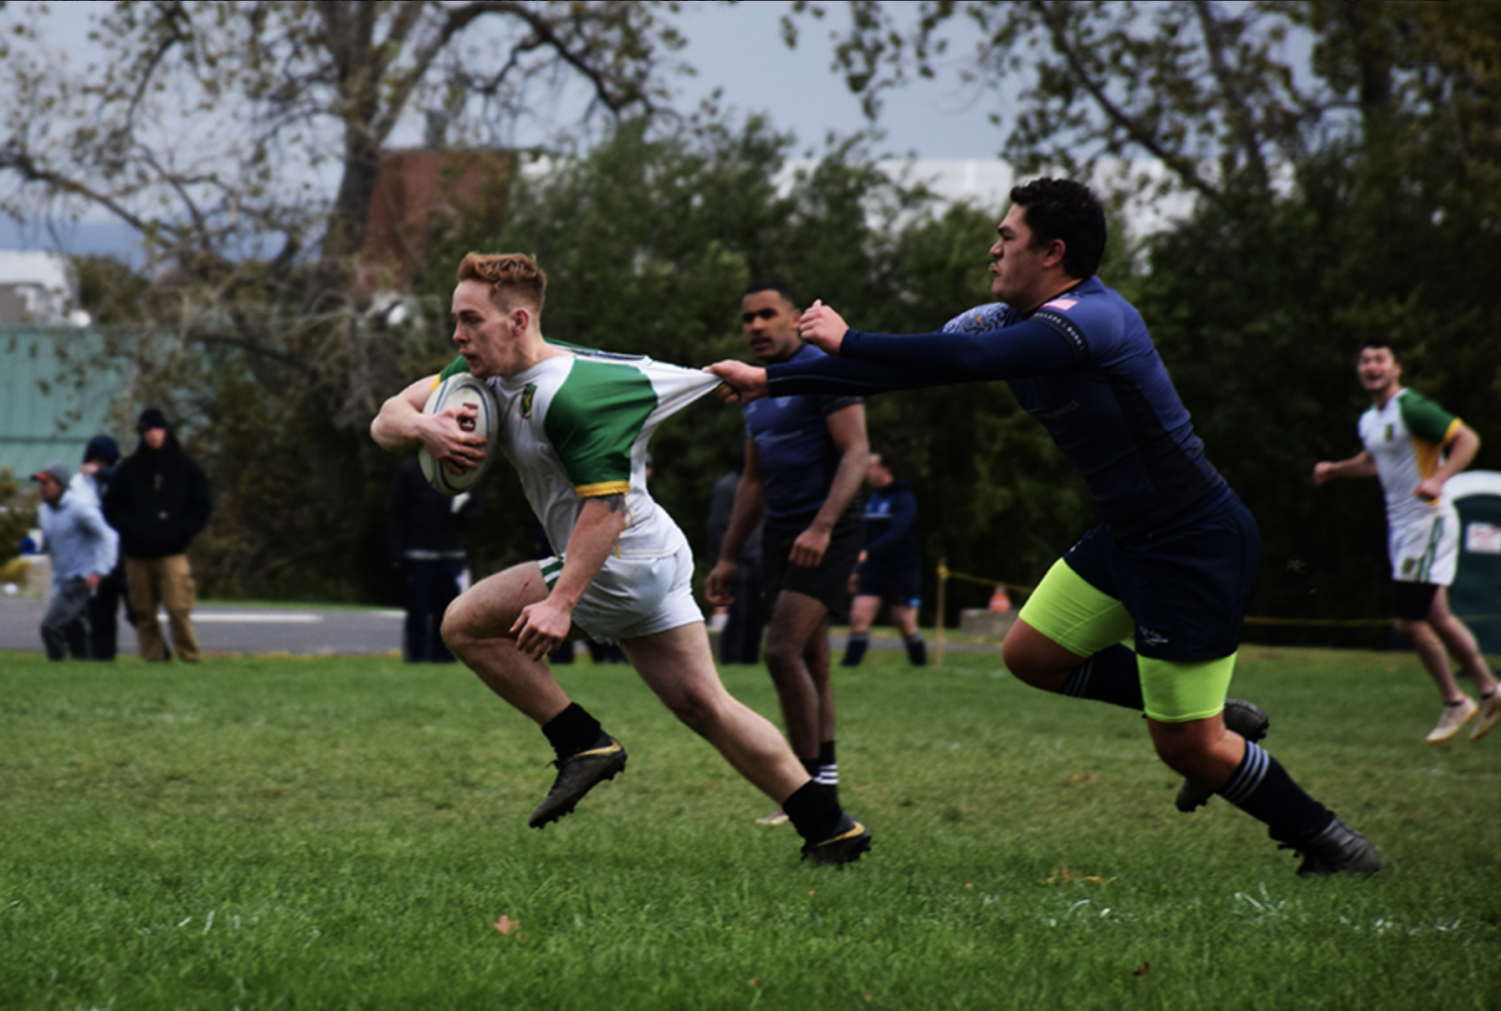 Blindside flanker Pat Rainford pulls away from the grip of a Quinnipiac Men's Rugby Team player Oct 21. The team defeated Quinnipiac with a final score of 68-15.